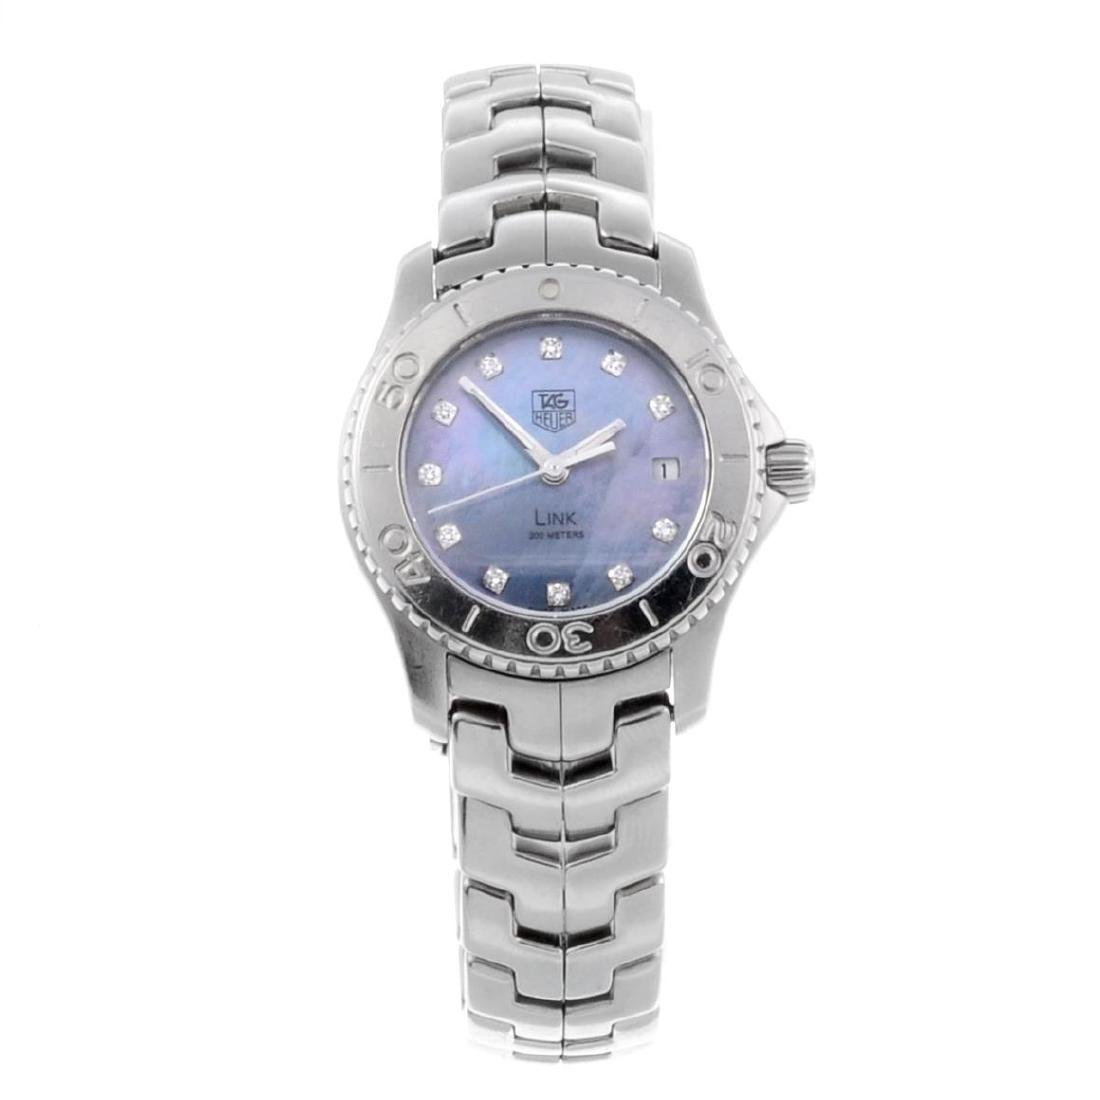 TAG HEUER - a lady's Link bracelet watch. Stainless